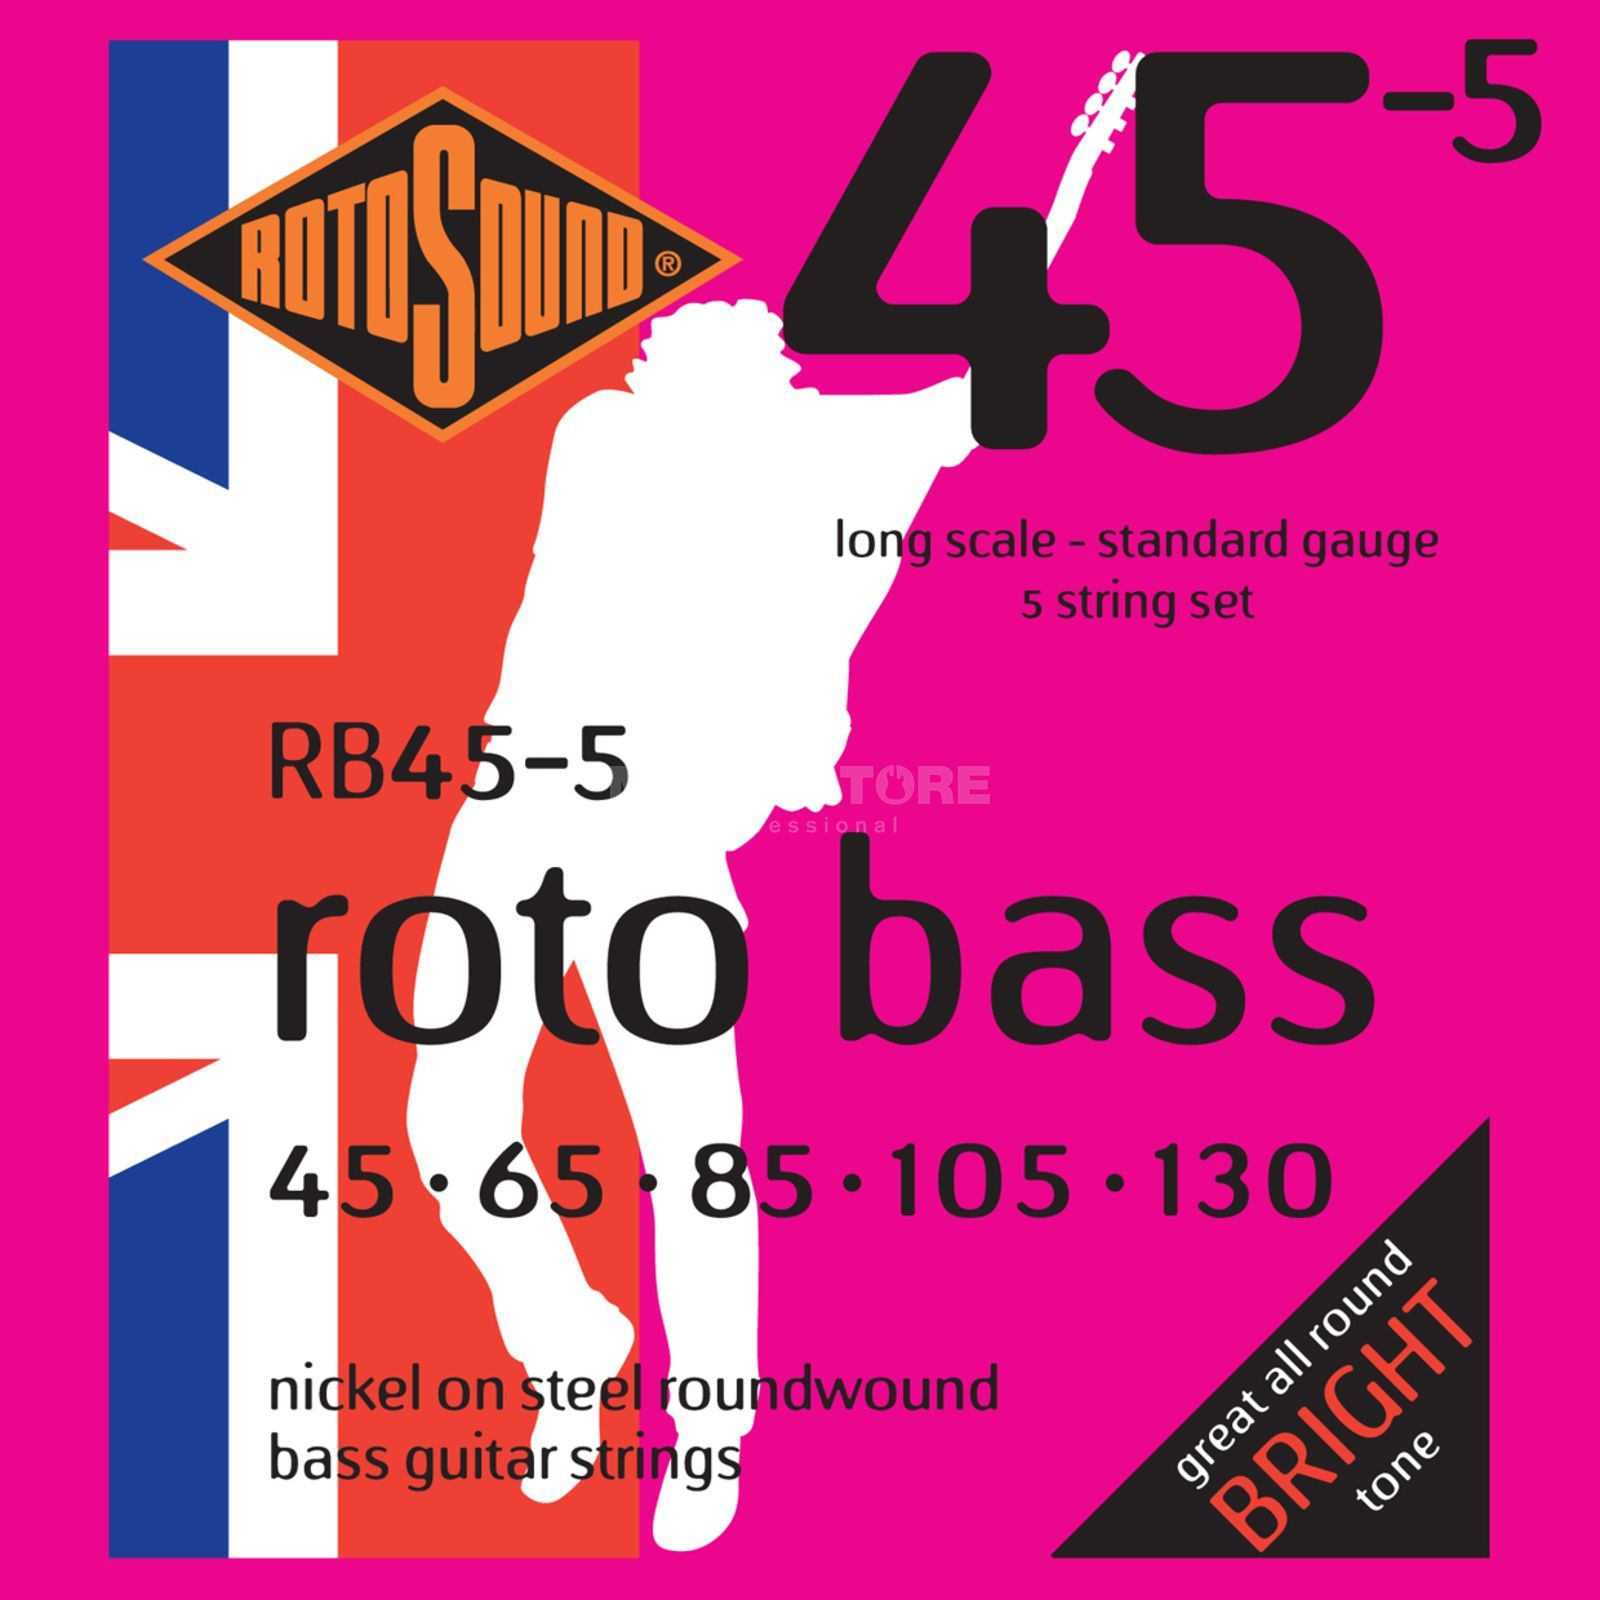 Rotosound Bass Strings RB455 5er 45-130 Nickel Wound Immagine prodotto